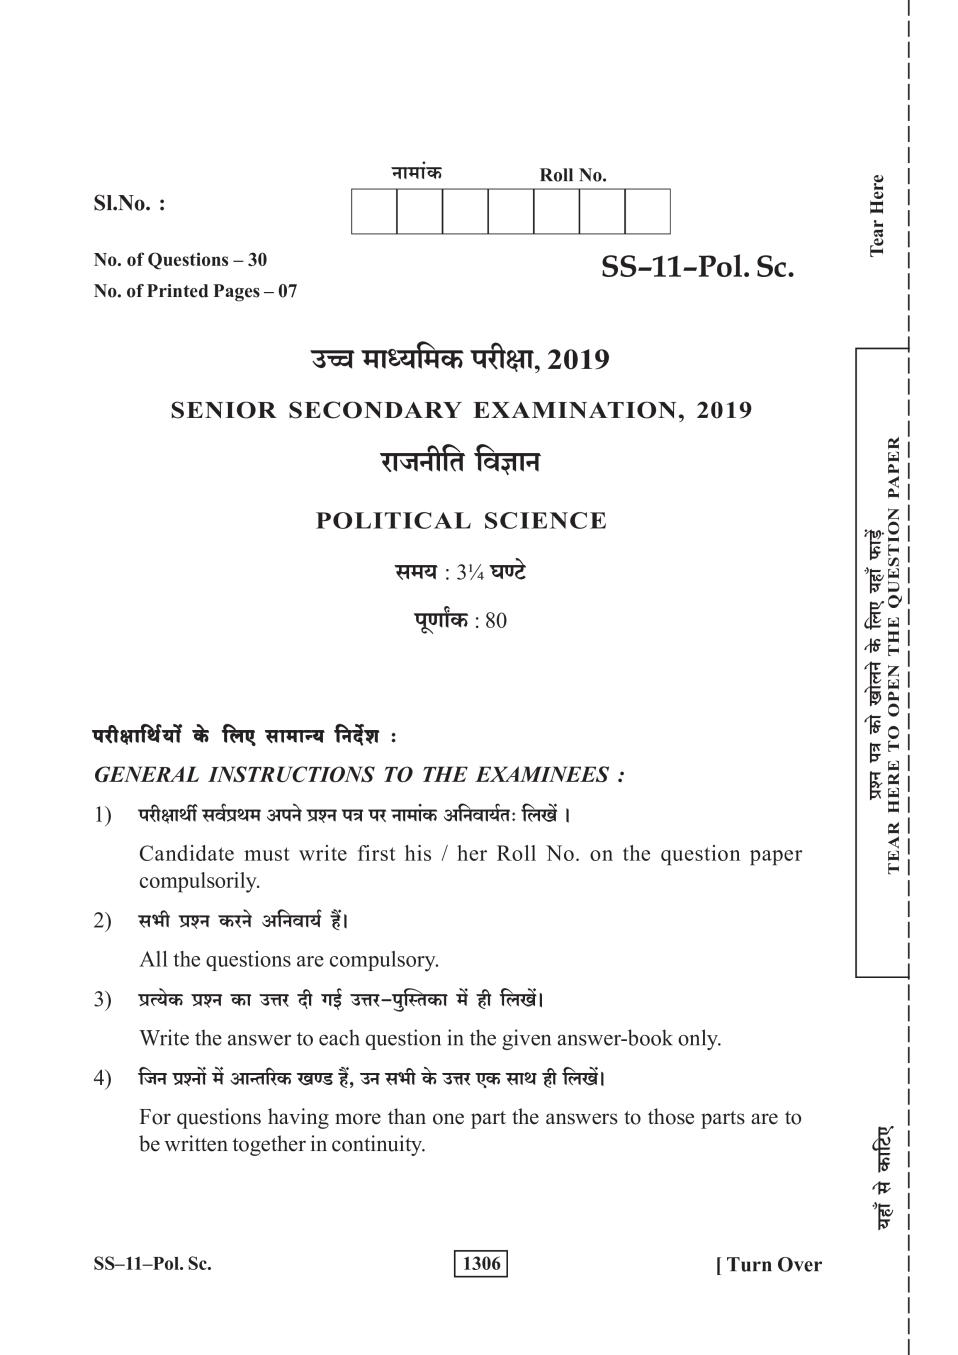 Rajasthan Board Sr. Secondary Pol Science Question Paper